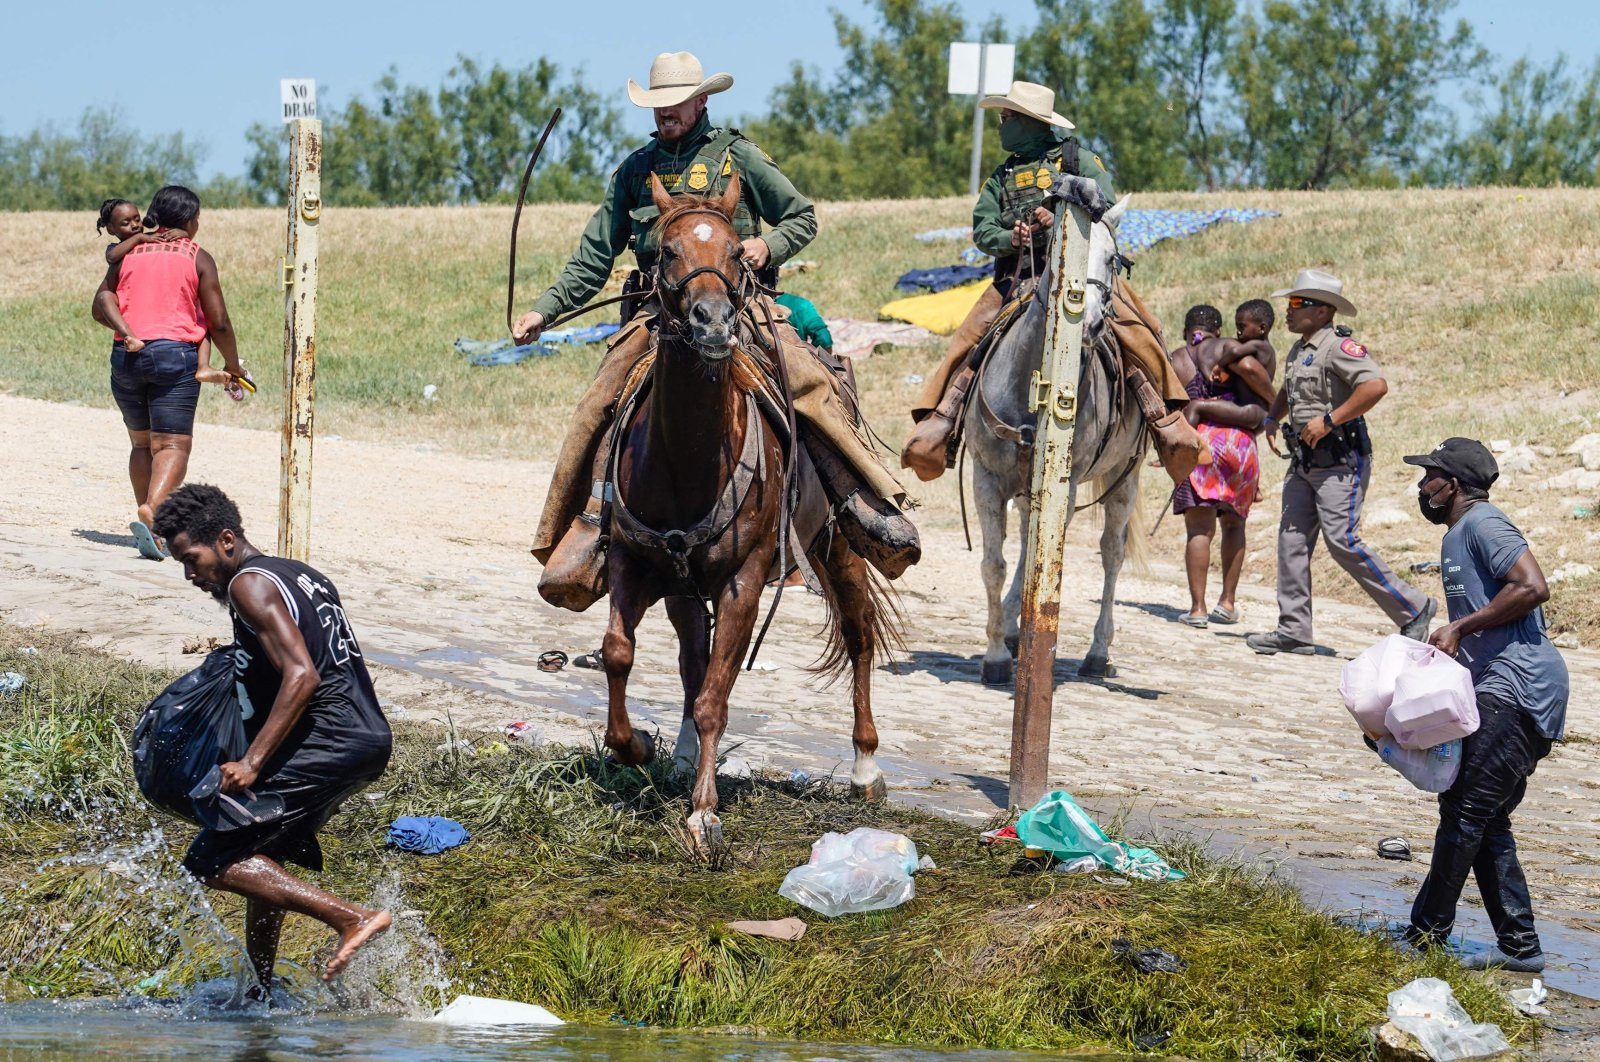 U.S. Border Patrol agents on horseback try to stop Haitian migrants from entering an encampment on the banks of the Rio Grande near the Acuna Del Rio International Bridge in Del Rio, Texas, U.S., Sept. 19, 2021. (AFP Photo)